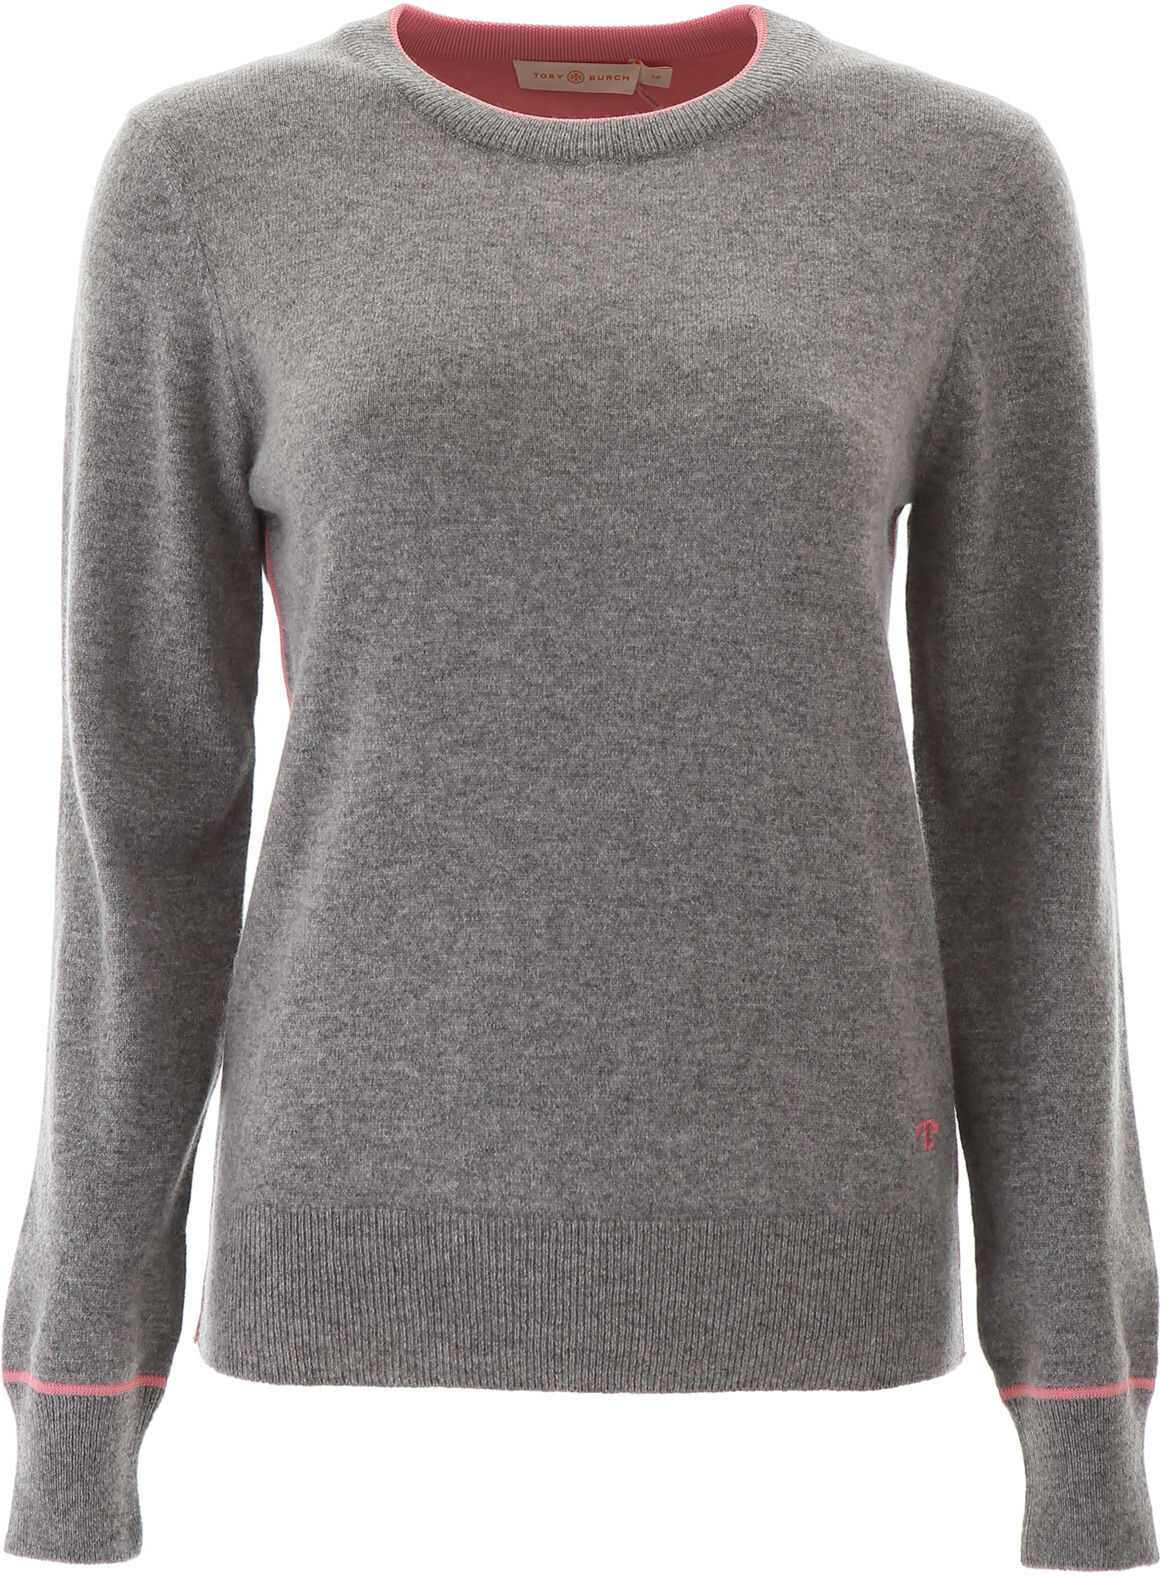 Tory Burch Cashmere Knit With Piping MEDIUM GRAY MELANGE VIVID PINK